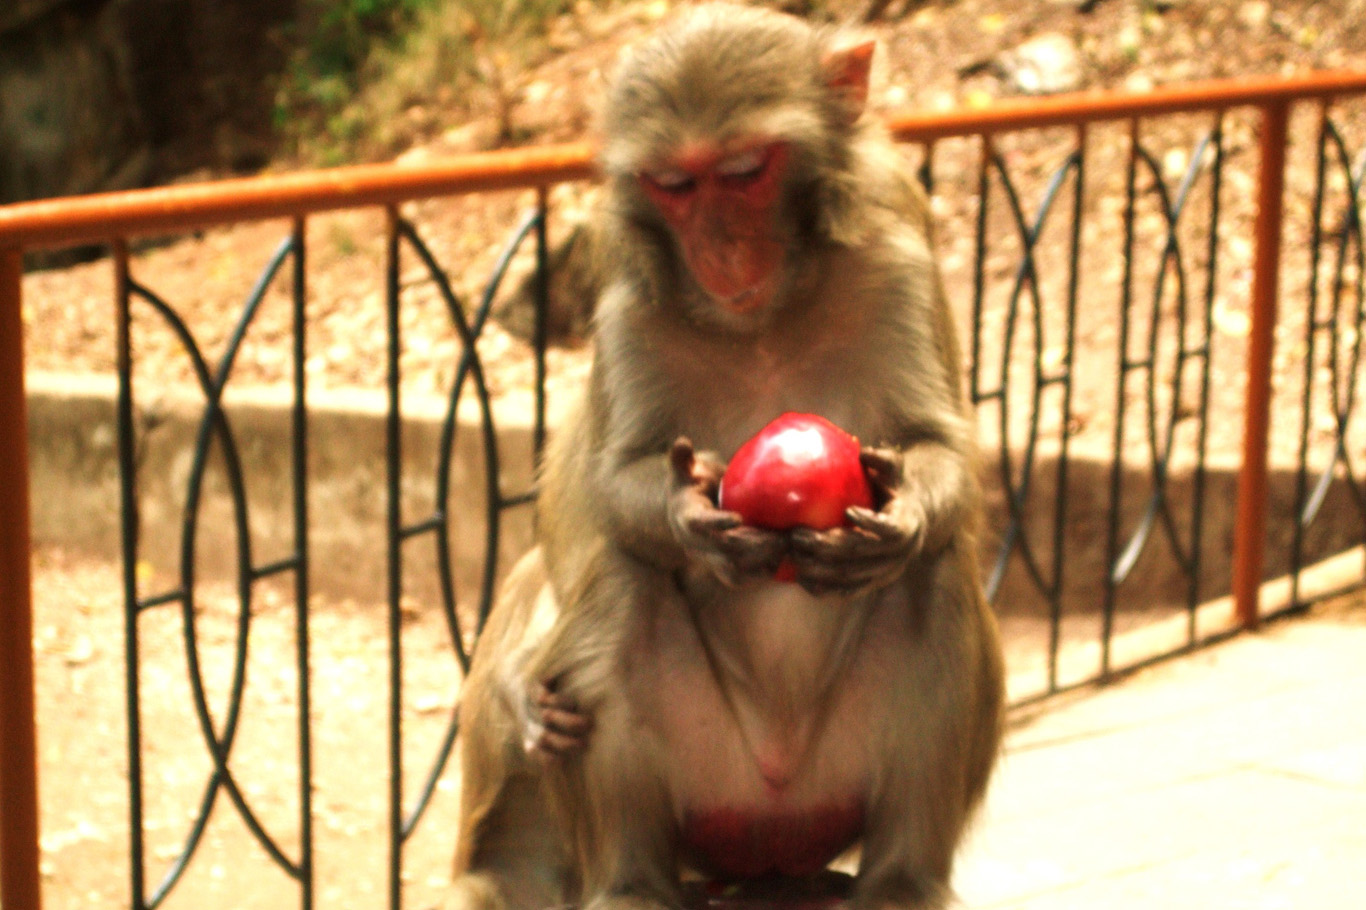 A monkey playing with an apple